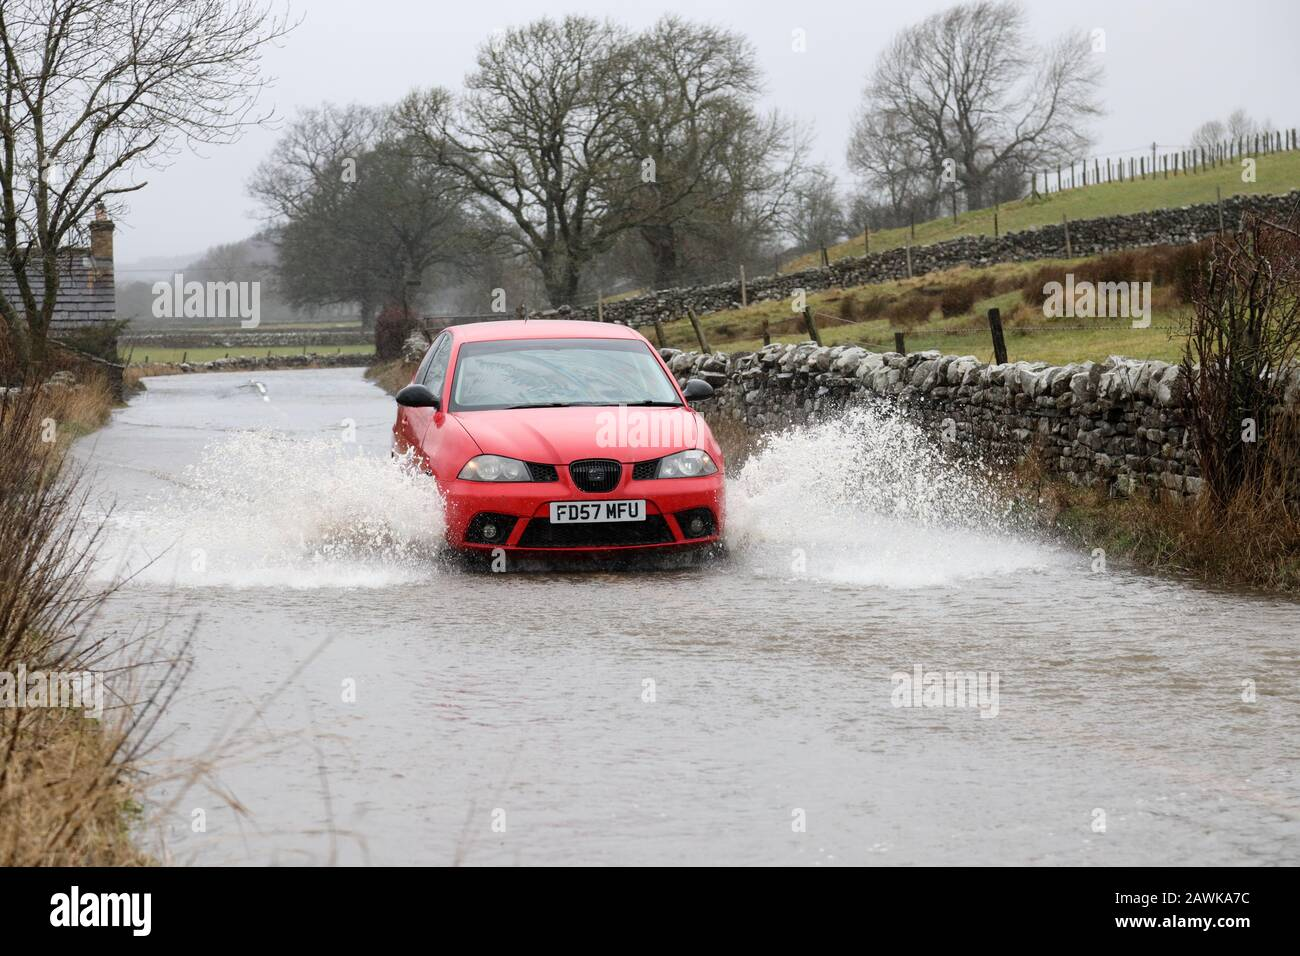 Middleton-in-Teesdale, Teesdale, County Durham, 9th February 2020. UK Weather.  Vehicles battle through floodwater after Storm Ciara caused extensive flooding on roads such as the B6277 near Middleton-in-Teesdale. Credit: David Forster/Alamy Live News Stock Photo